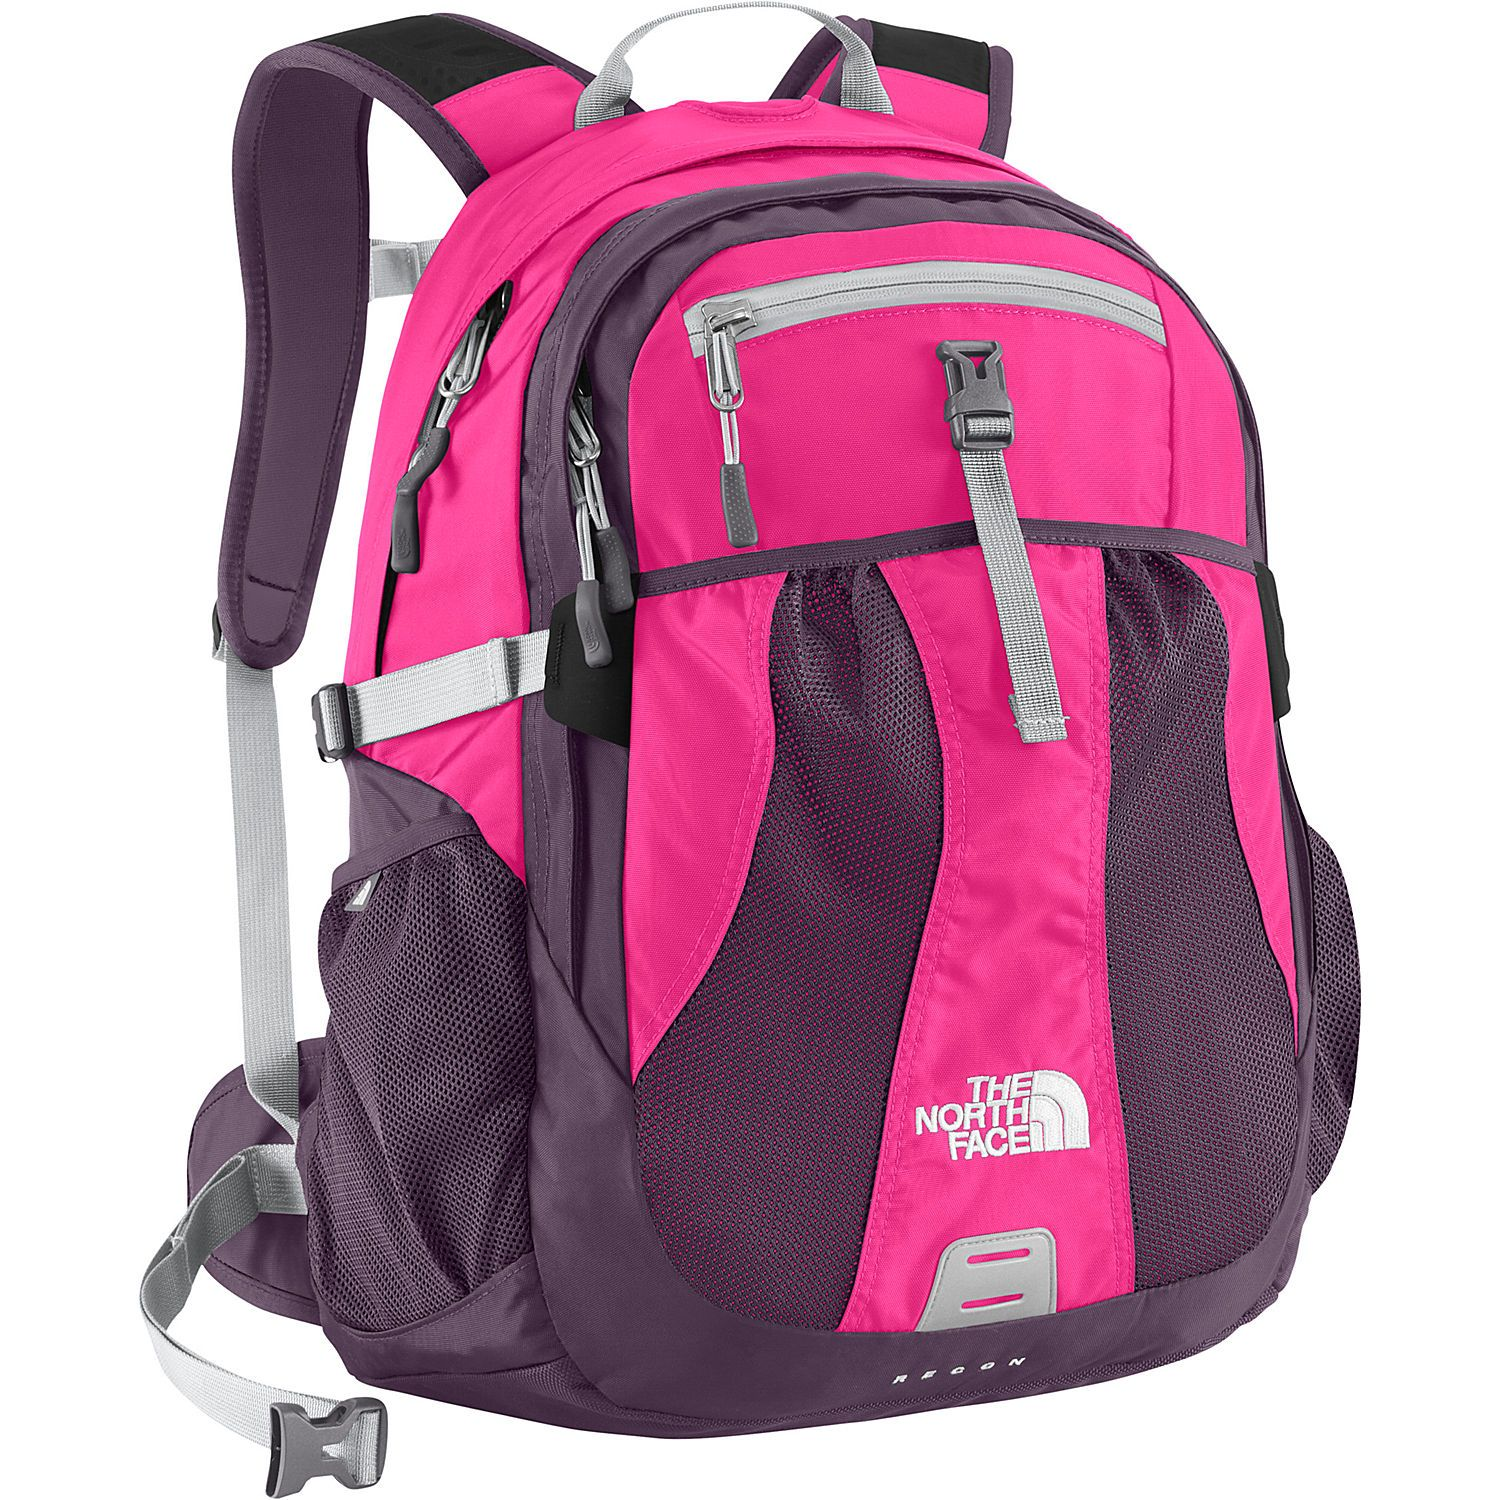 0f75c6d44 Women's Recon Laptop Backpack 15